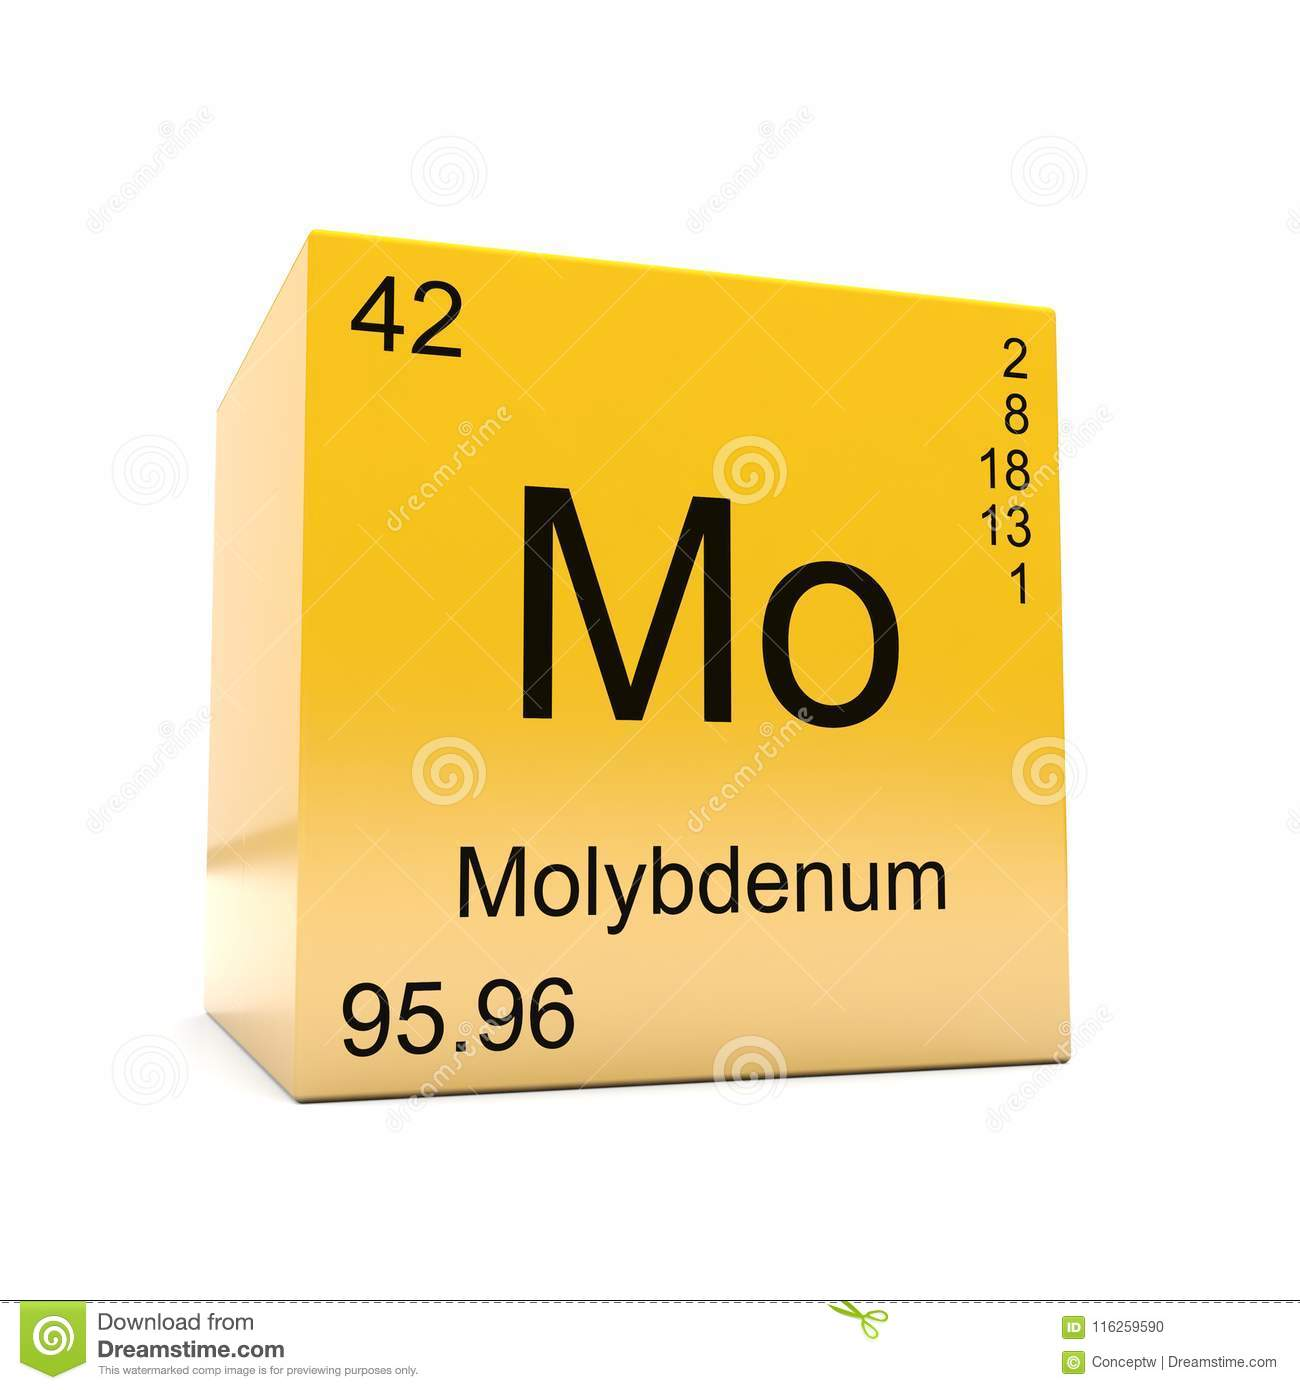 Molybdenum Chemical Element Symbol From Periodic Table Stock